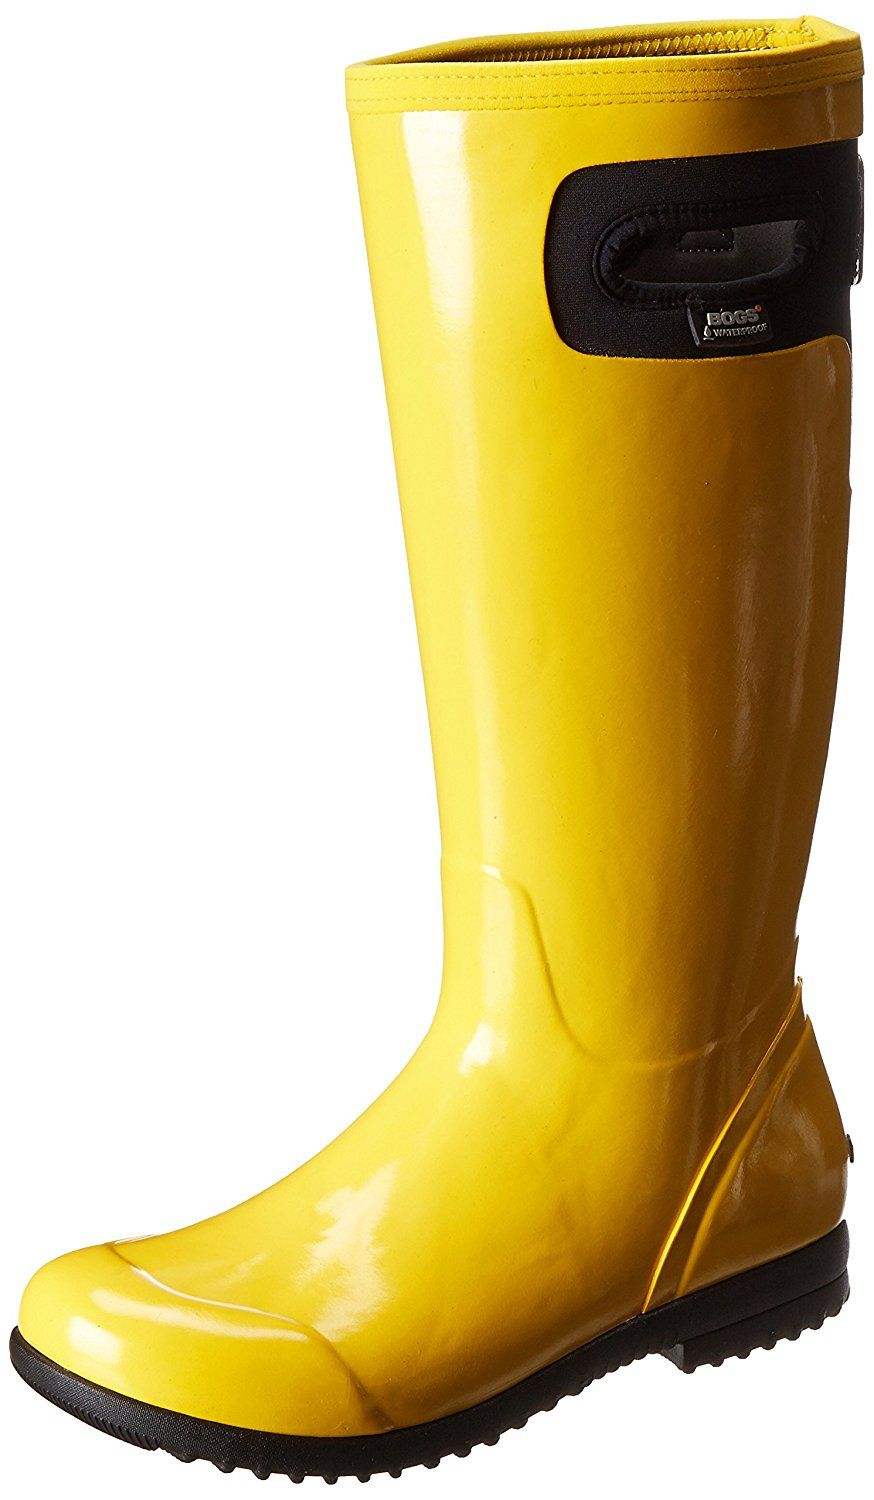 Bogs Women S Tacoma Waterproof Insulated Boot This Is An Amazon Affiliate Link Want To Know More Click On The Im Boots Womens Bogs Womens Knee High Boots